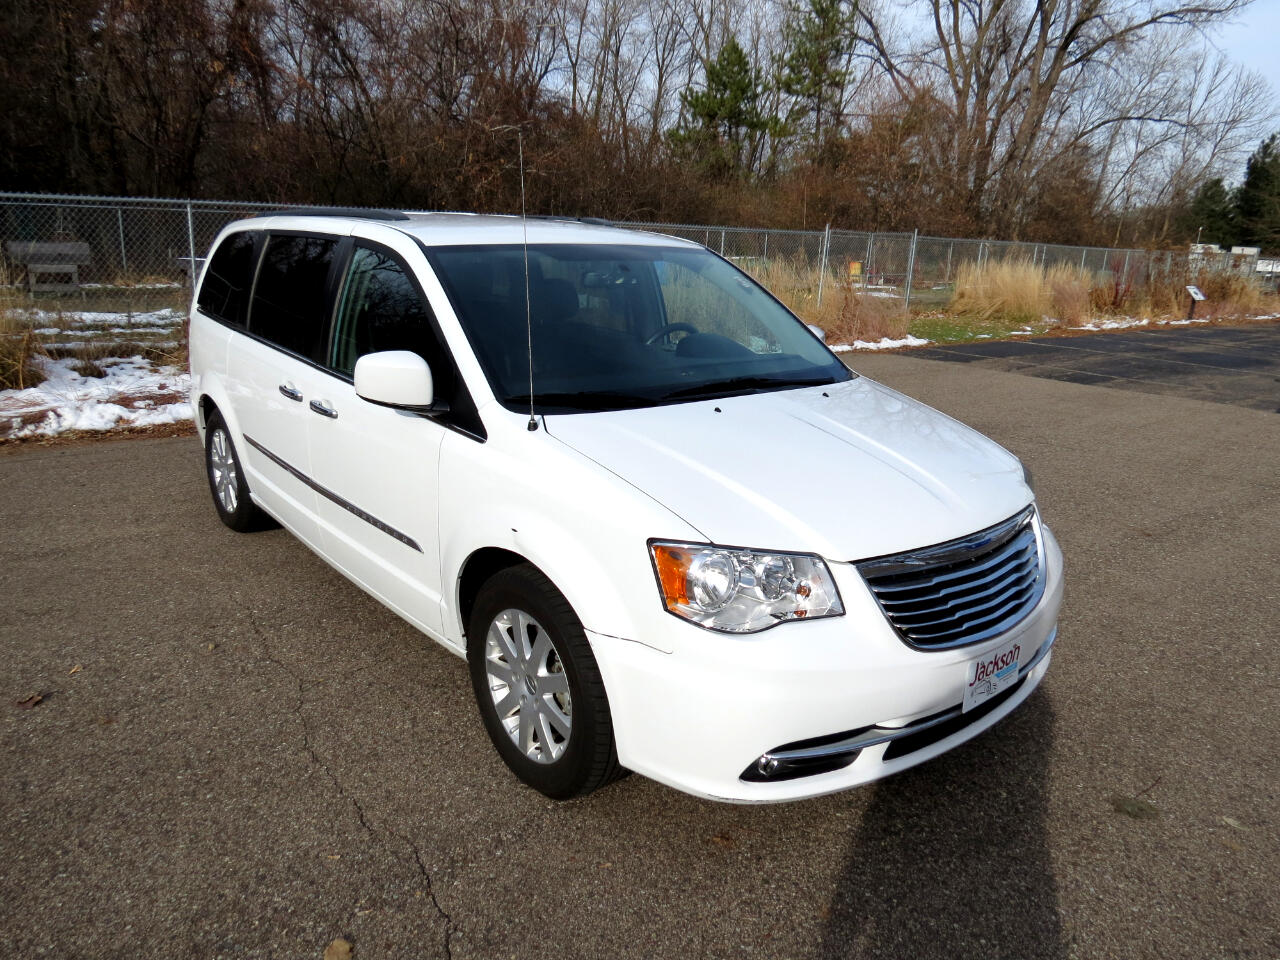 used 2016 Chrysler Town & Country car, priced at $12,988